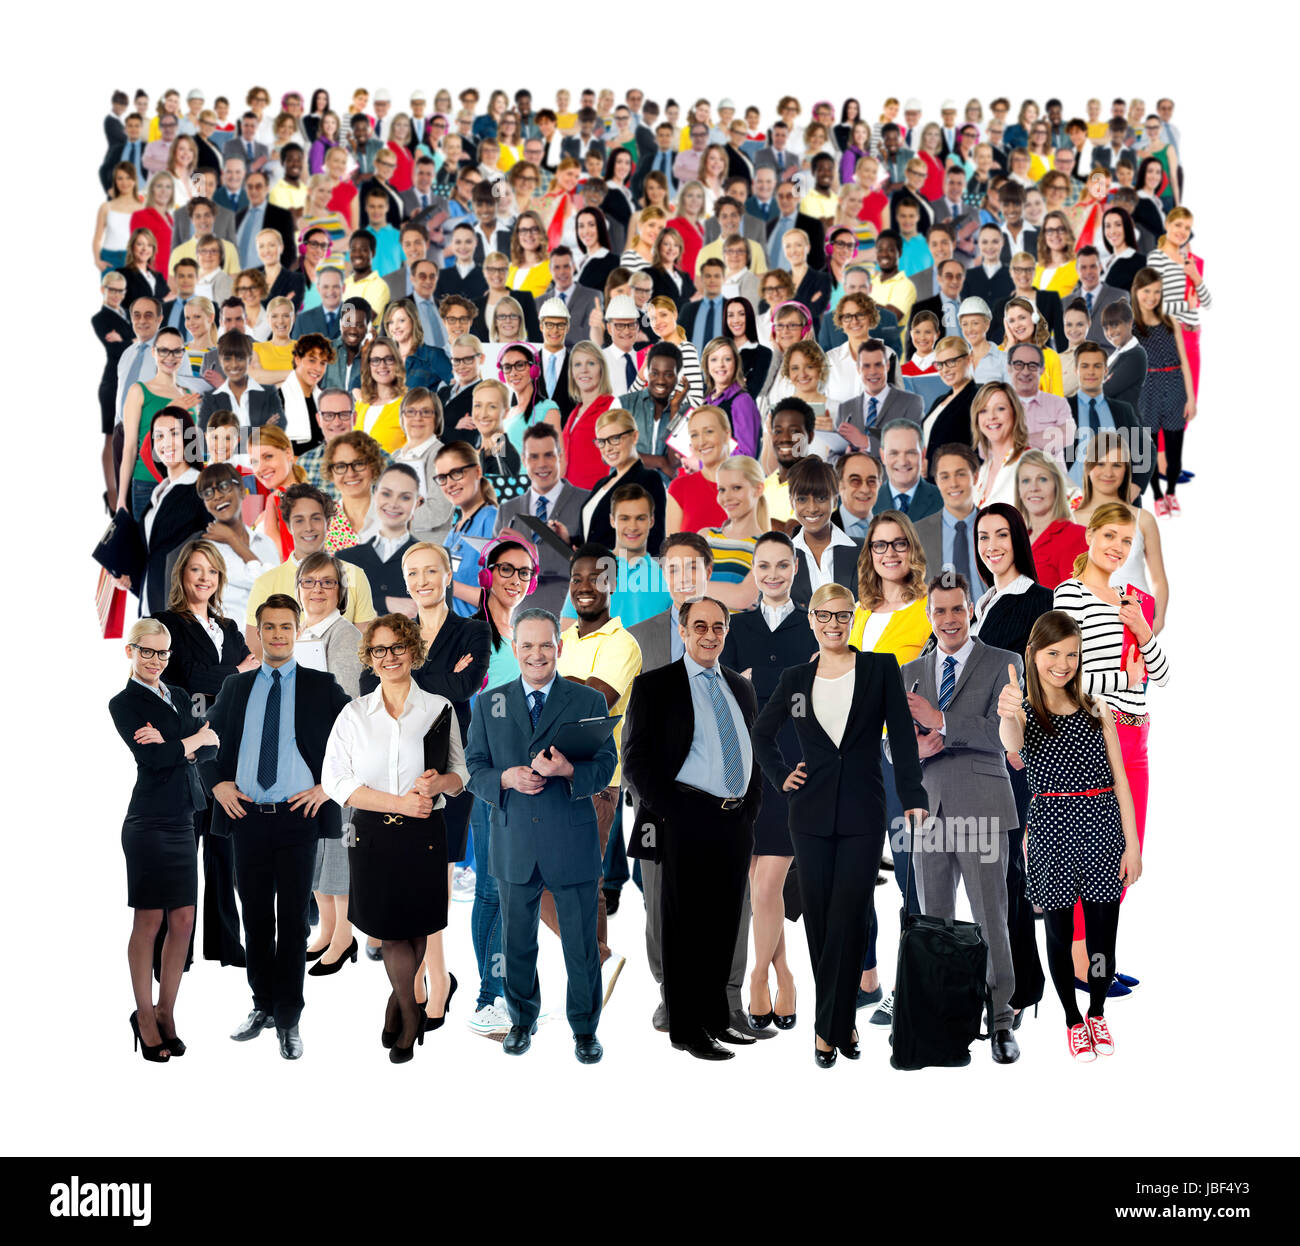 Collage of various people belonging to different industries, cultures and ethnicity. - Stock Image